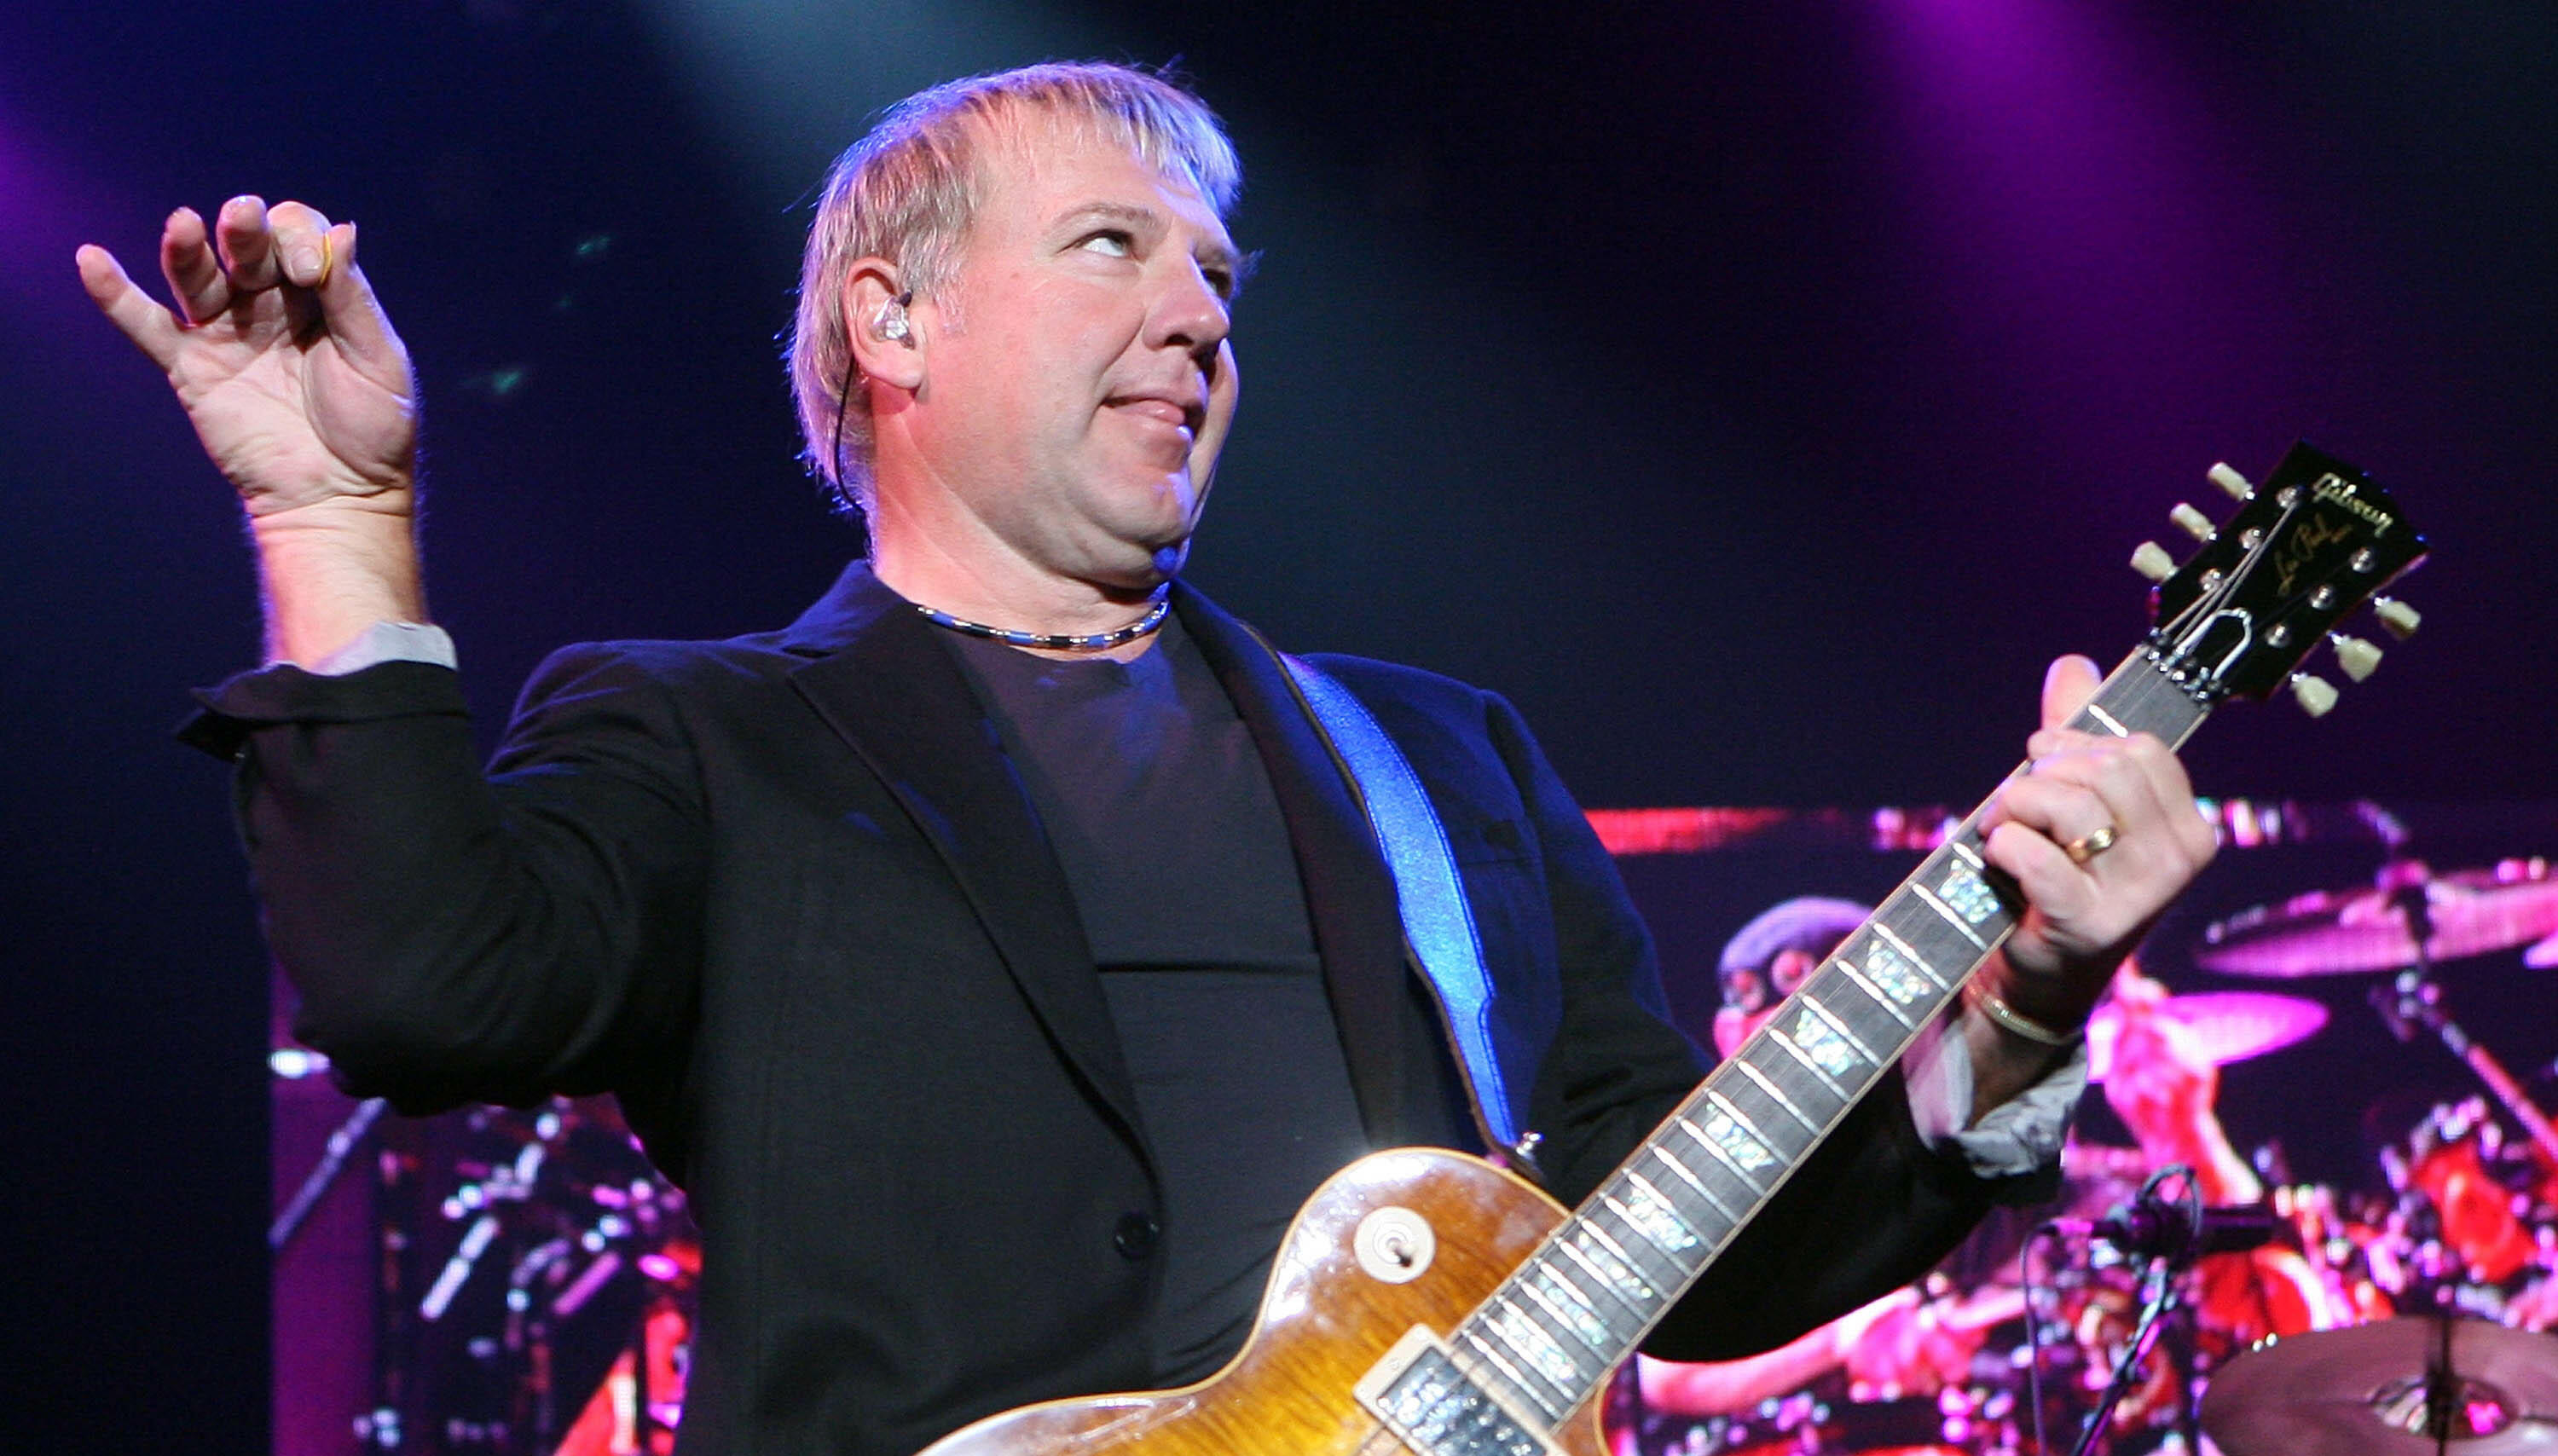 Alex Lifeson Is Writing Music With Drummer Marco Minnemann